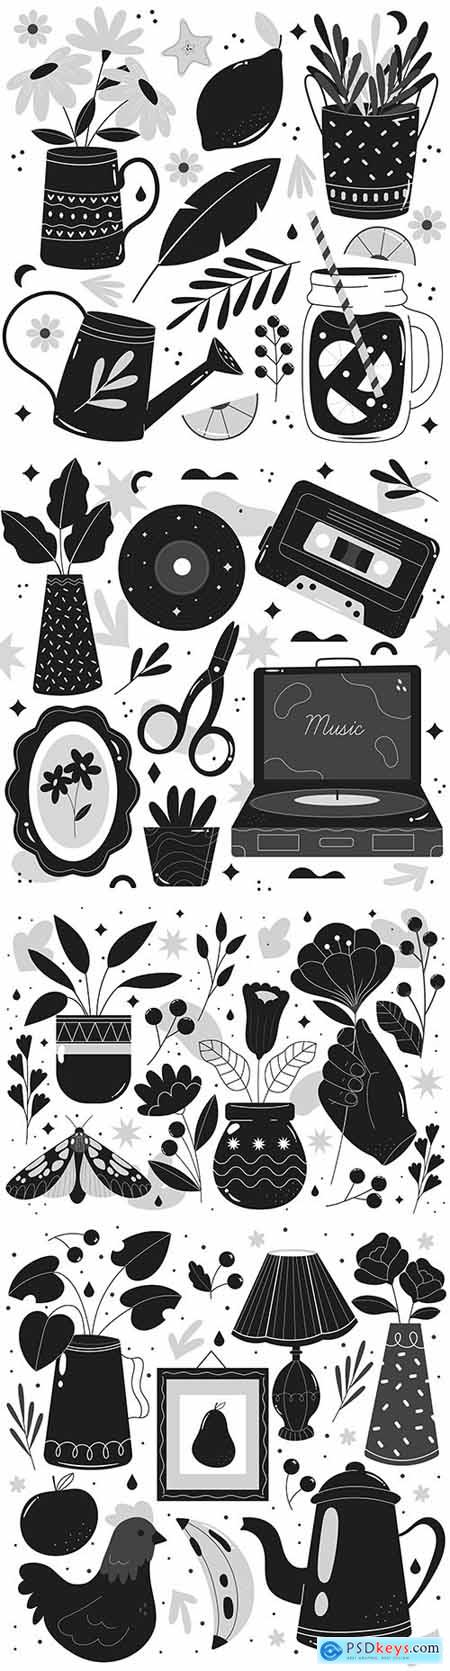 Objects and flowers painted colorless illustrations